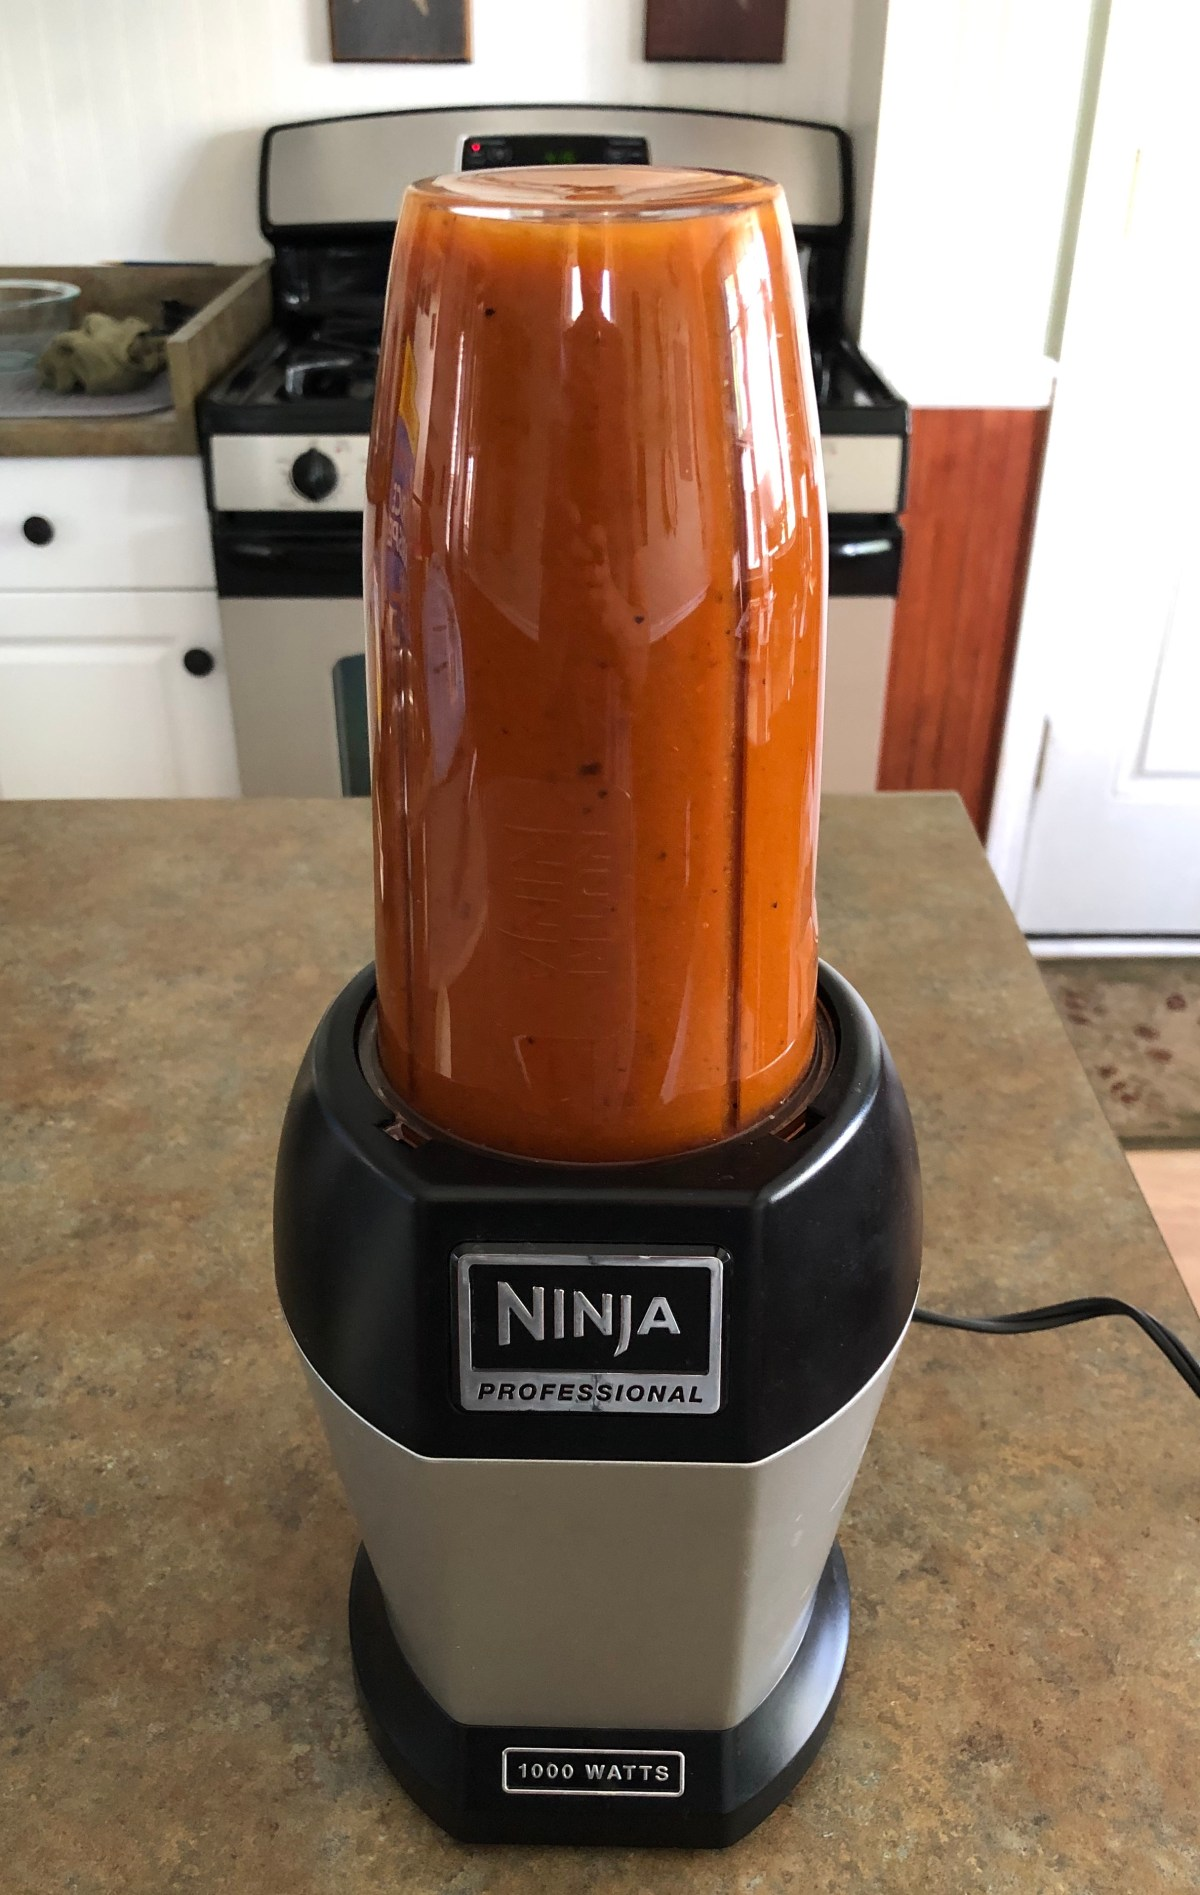 Barbecue sauce blended together in a Ninja blender.